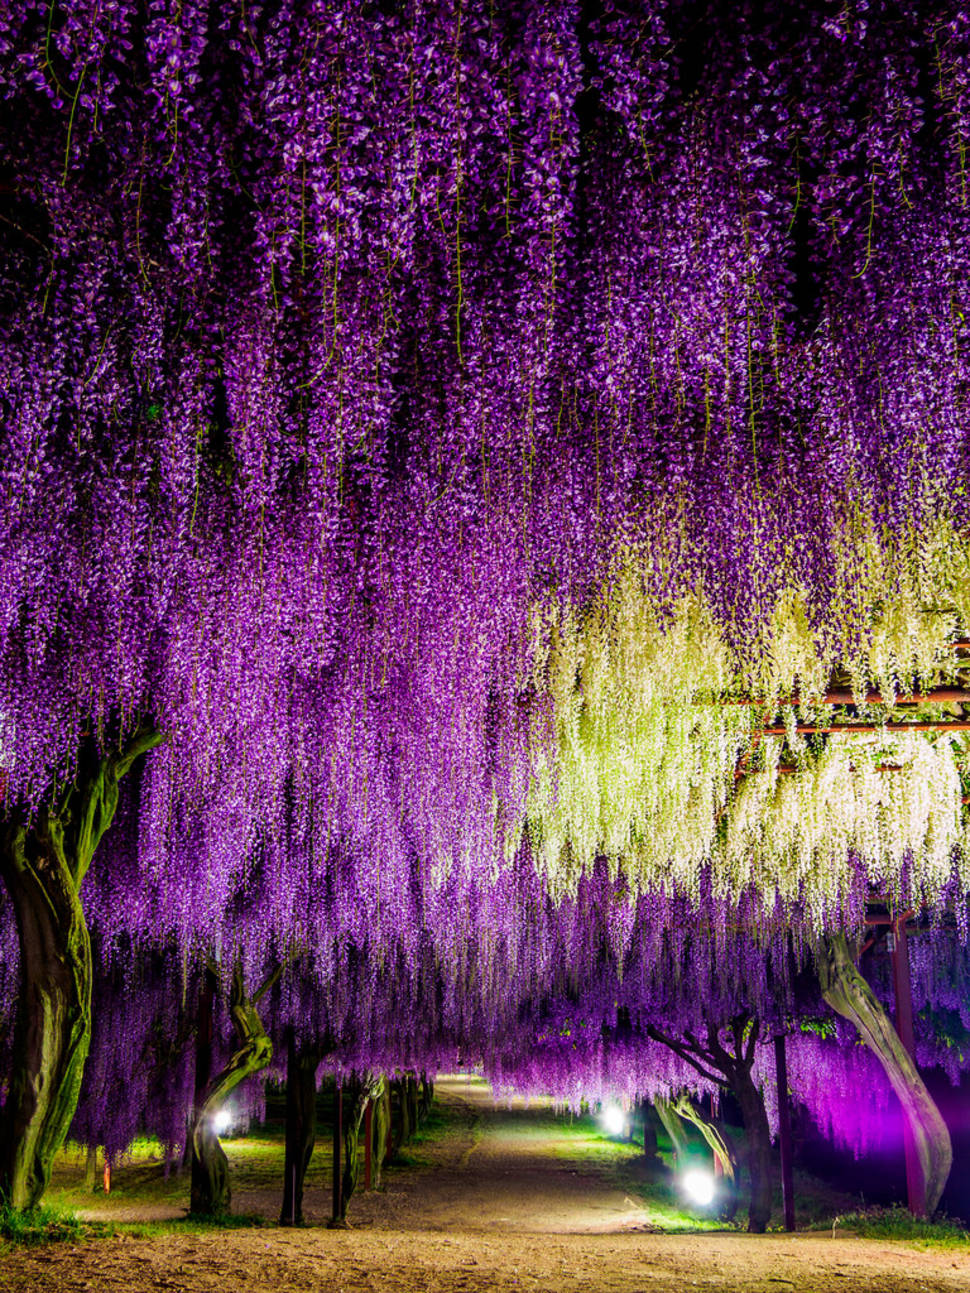 Best time to see Wisteria Tunnels in Japan